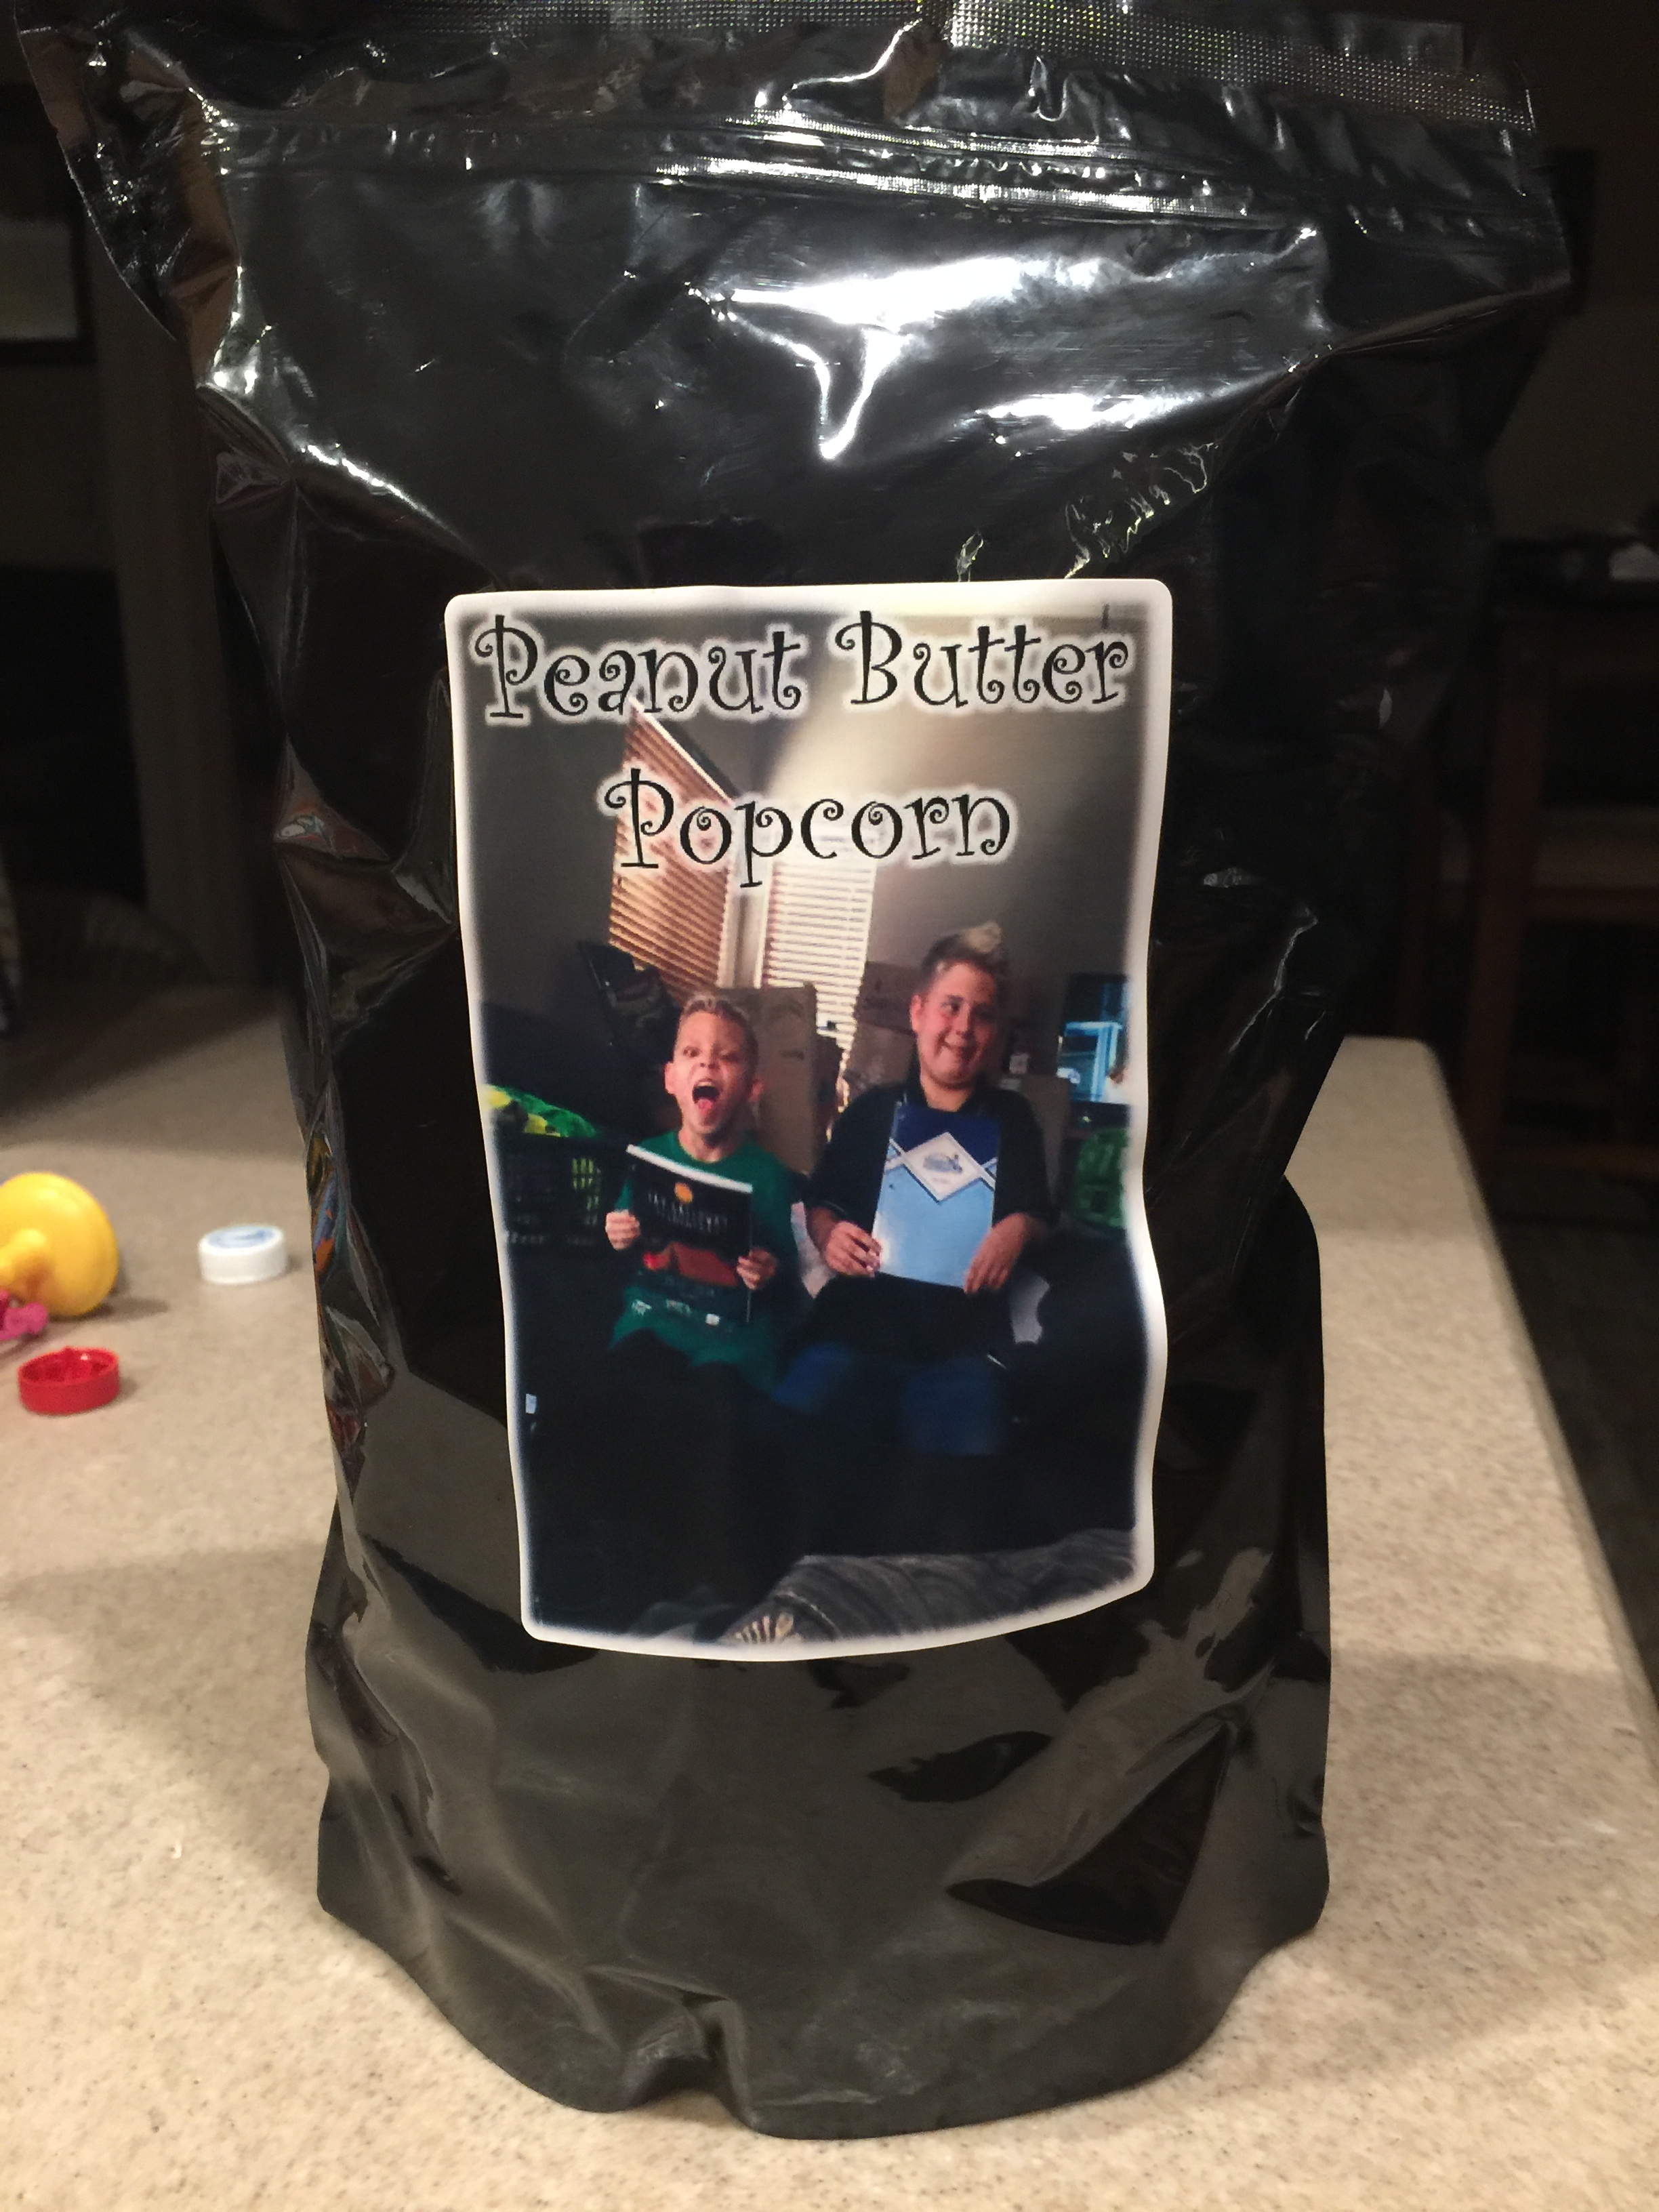 Heather's Popcorn Peanuet Butter